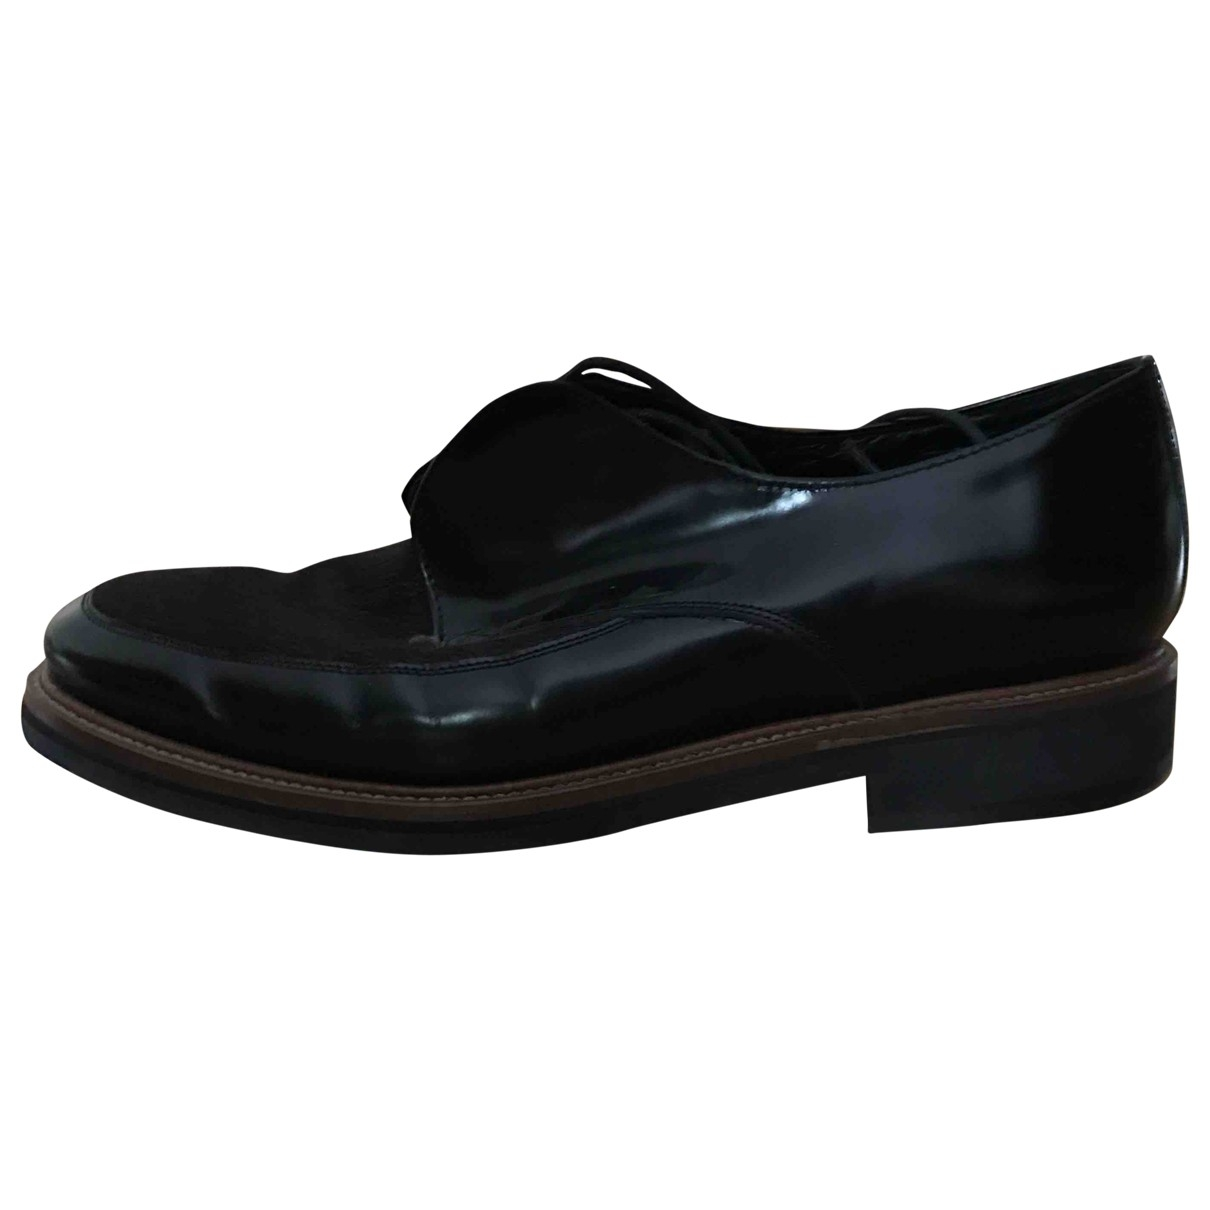 Valentine Gauthier \N Black Patent leather Lace ups for Women 38.5 EU